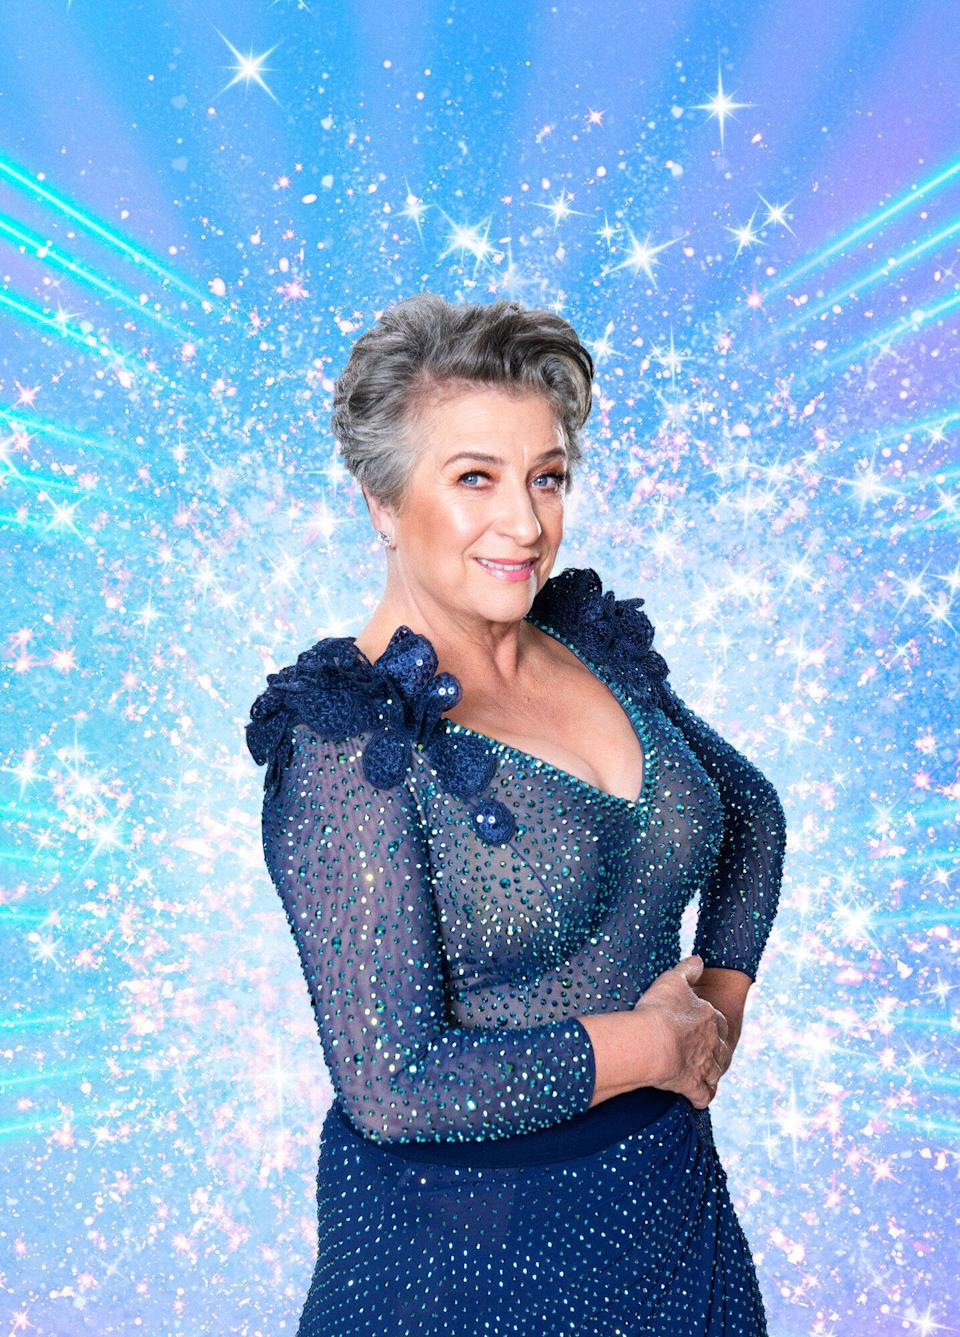 Caroline Quentin in her Strictly promo photo (Photo: BBC/Ray Burmiston)